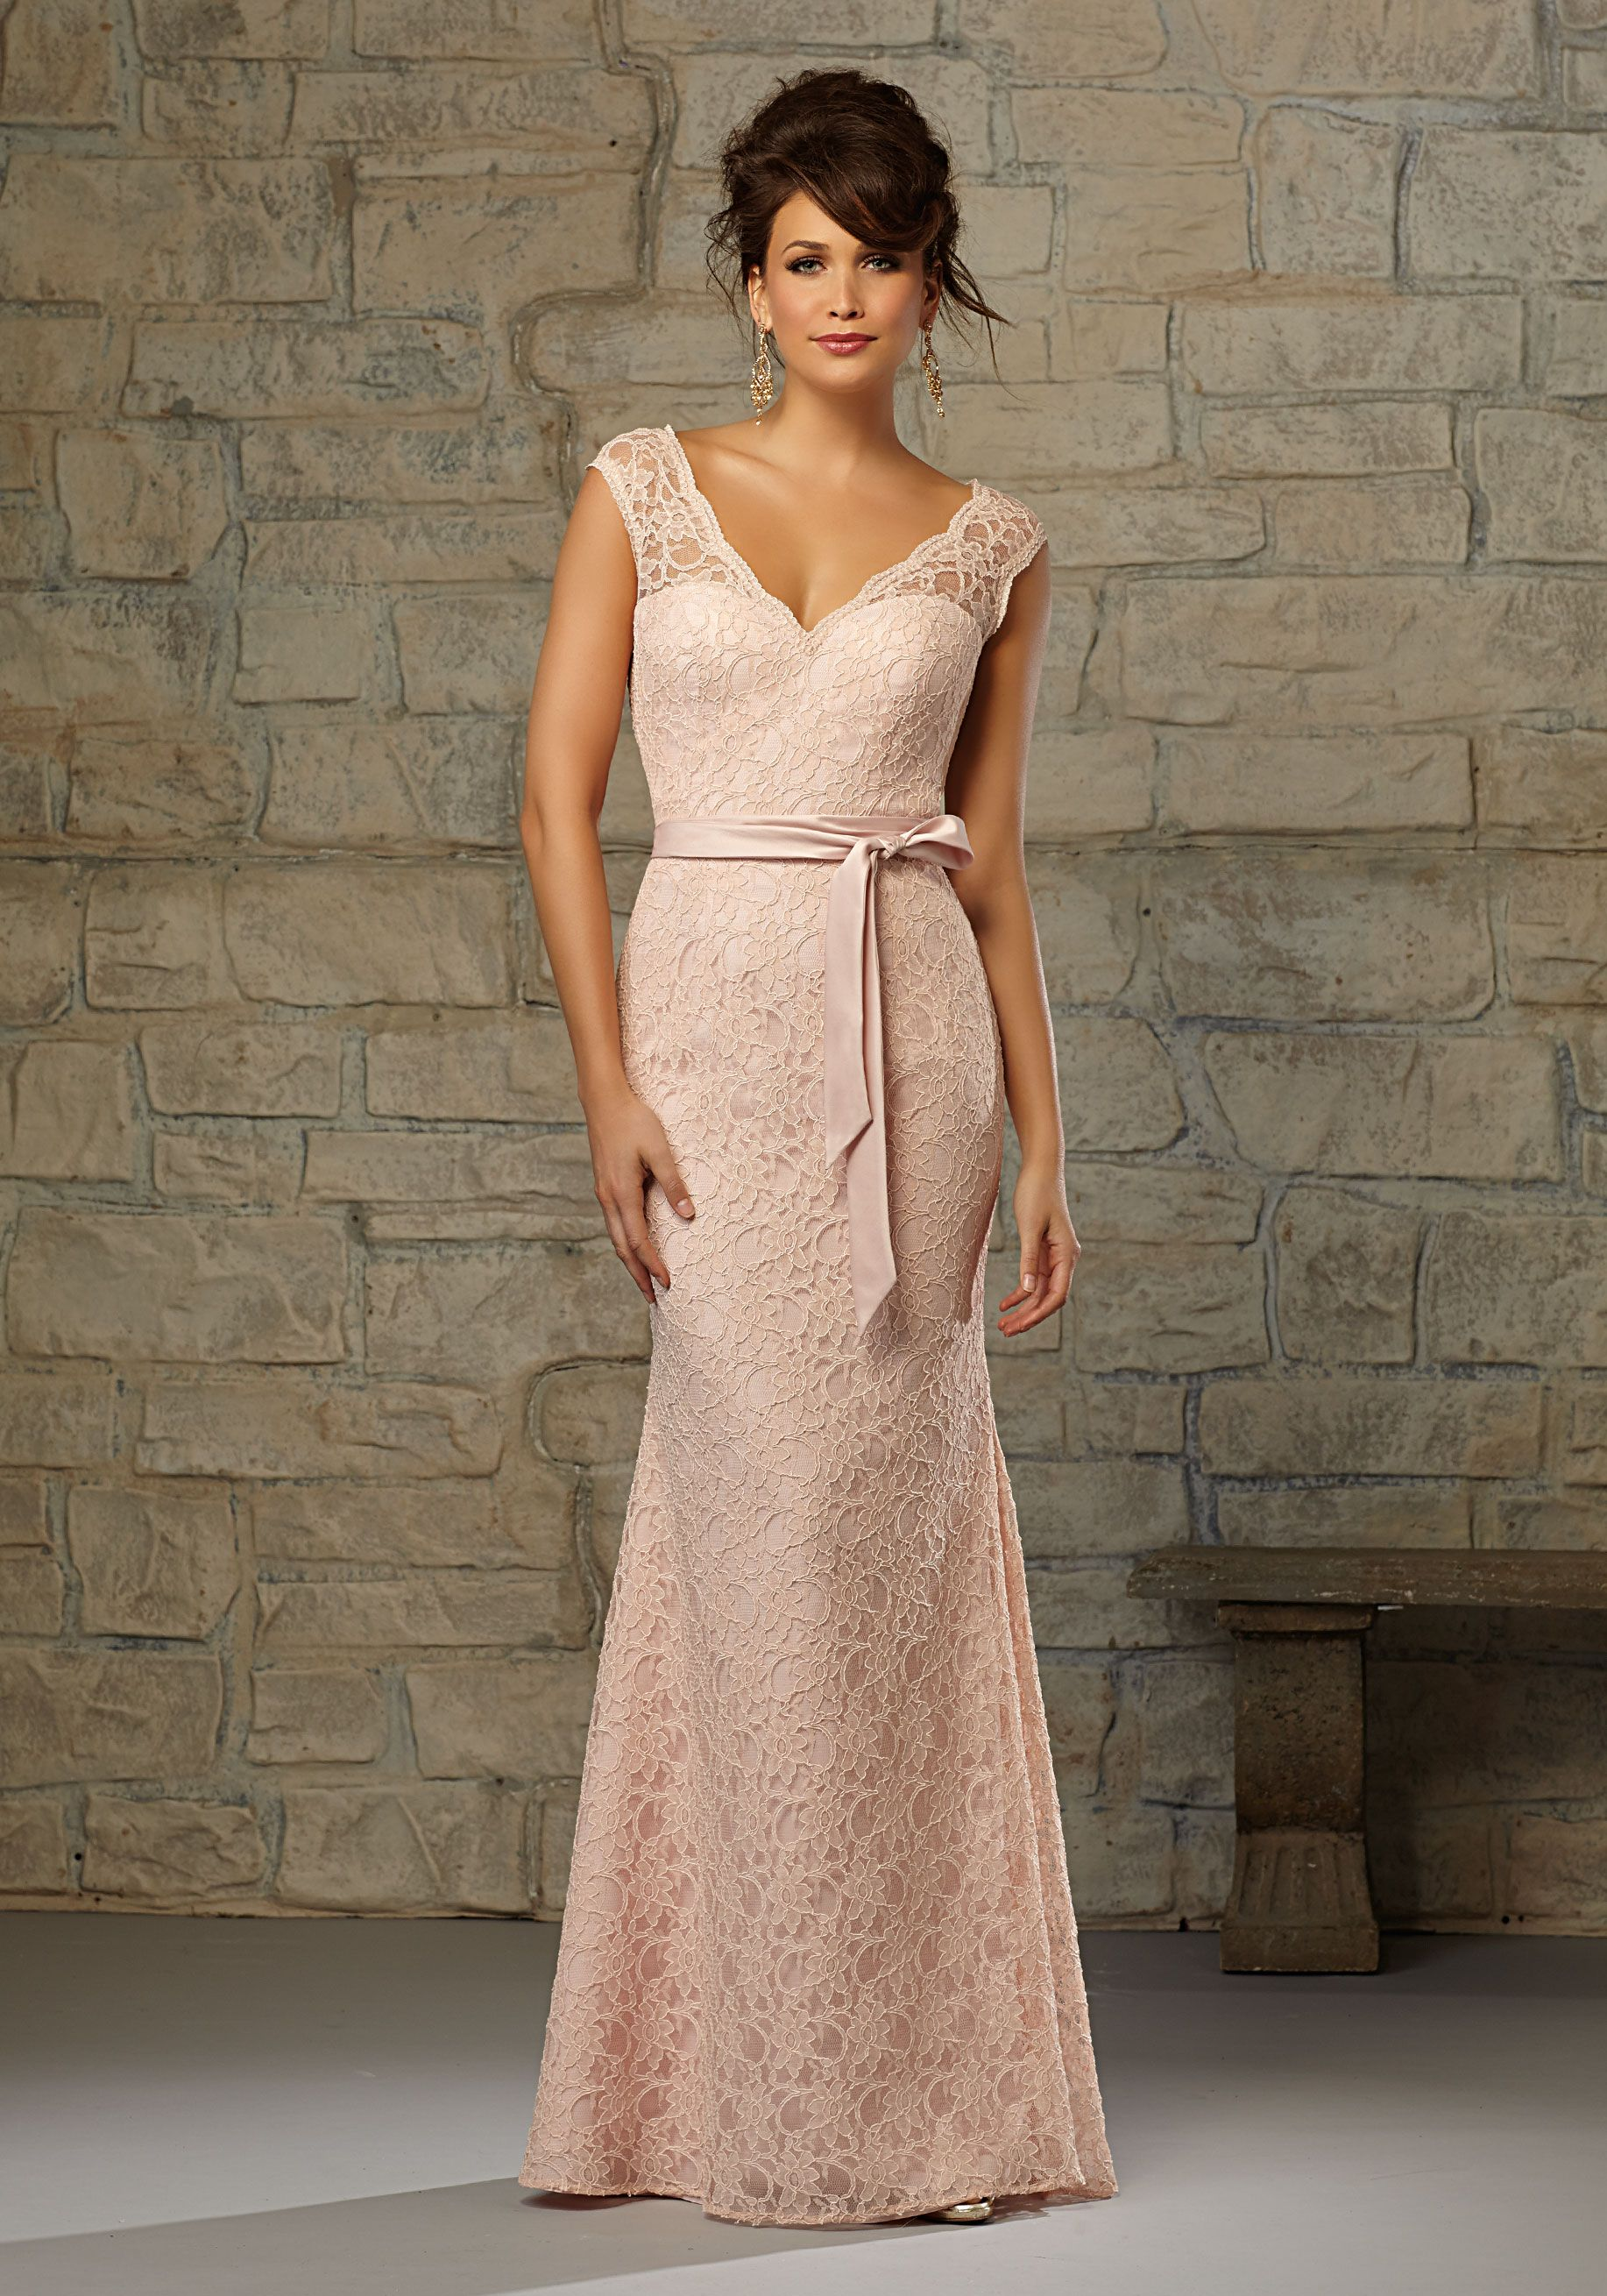 Romantic lace bridesmaid dress with matching satin tie sash and romantic lace bridesmaid dress with matching satin tie sash and cap sleeves designed by madeline ombrellifo Choice Image